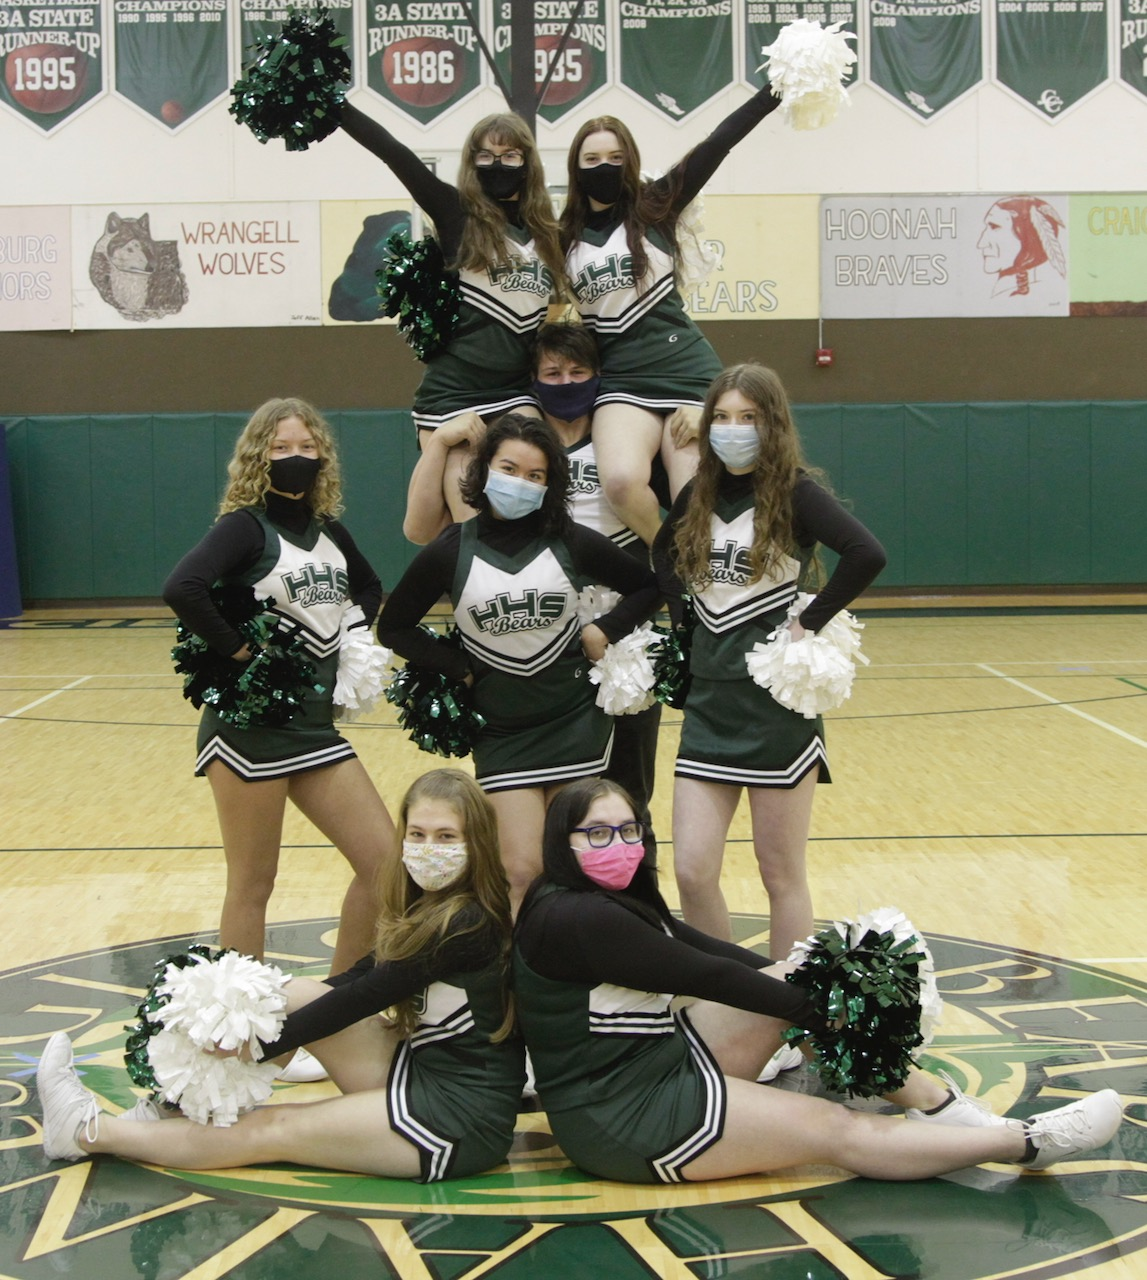 2021 Cheer and Dance Team